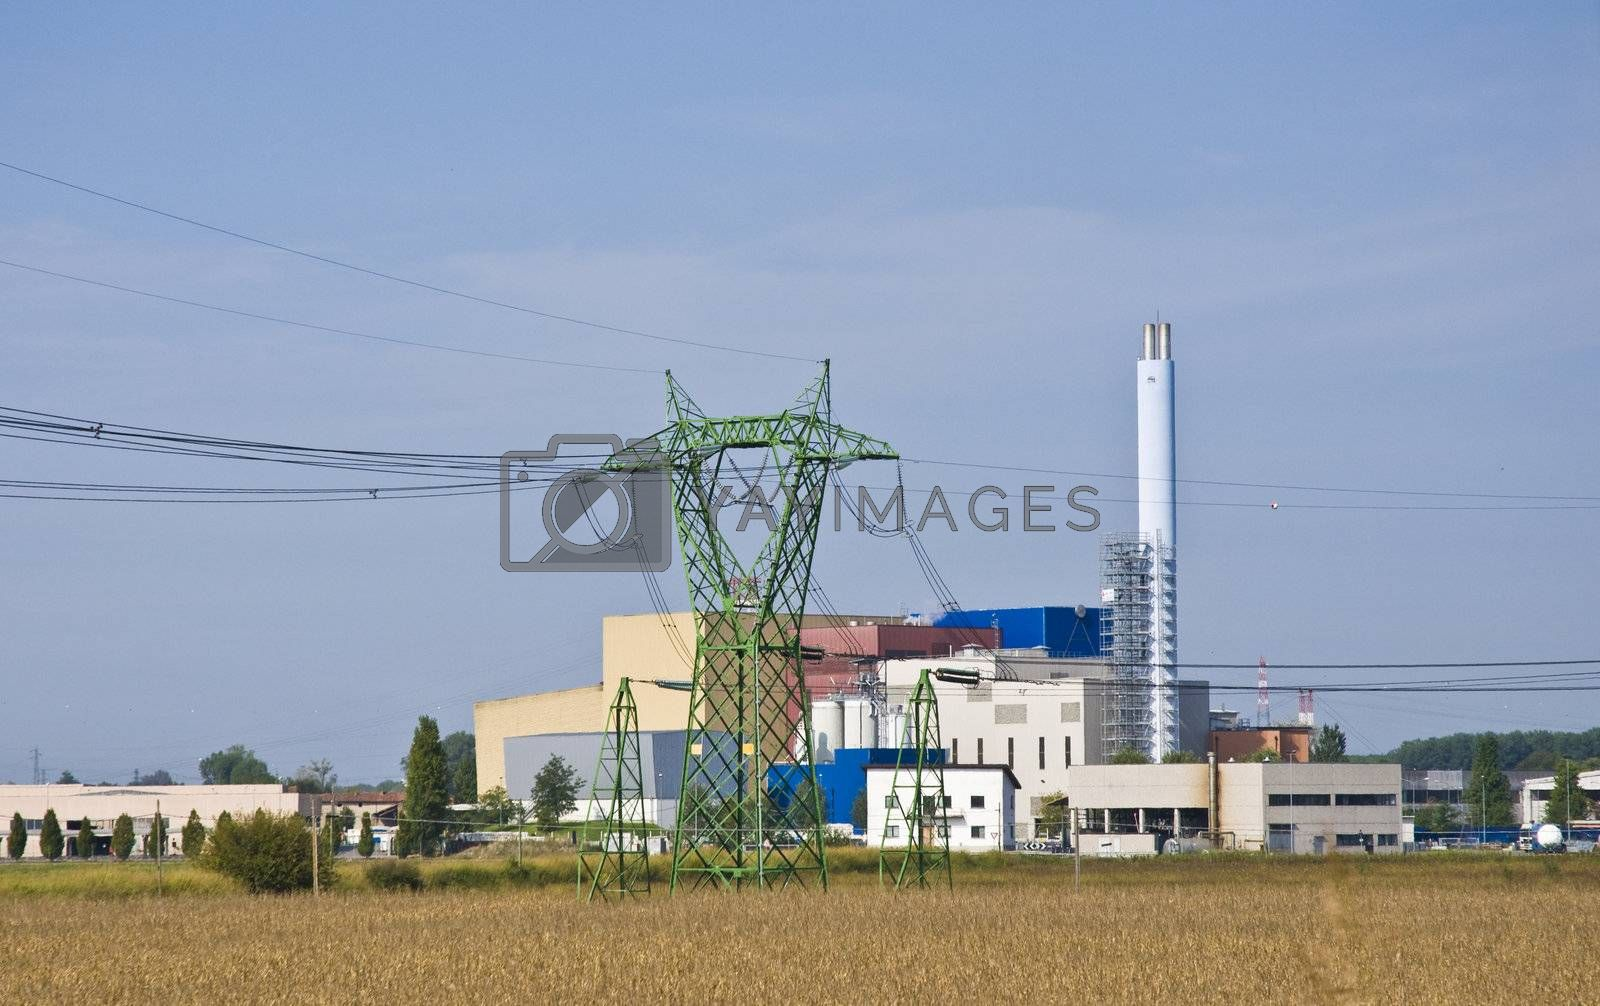 Factory in the midst of agricultural crops